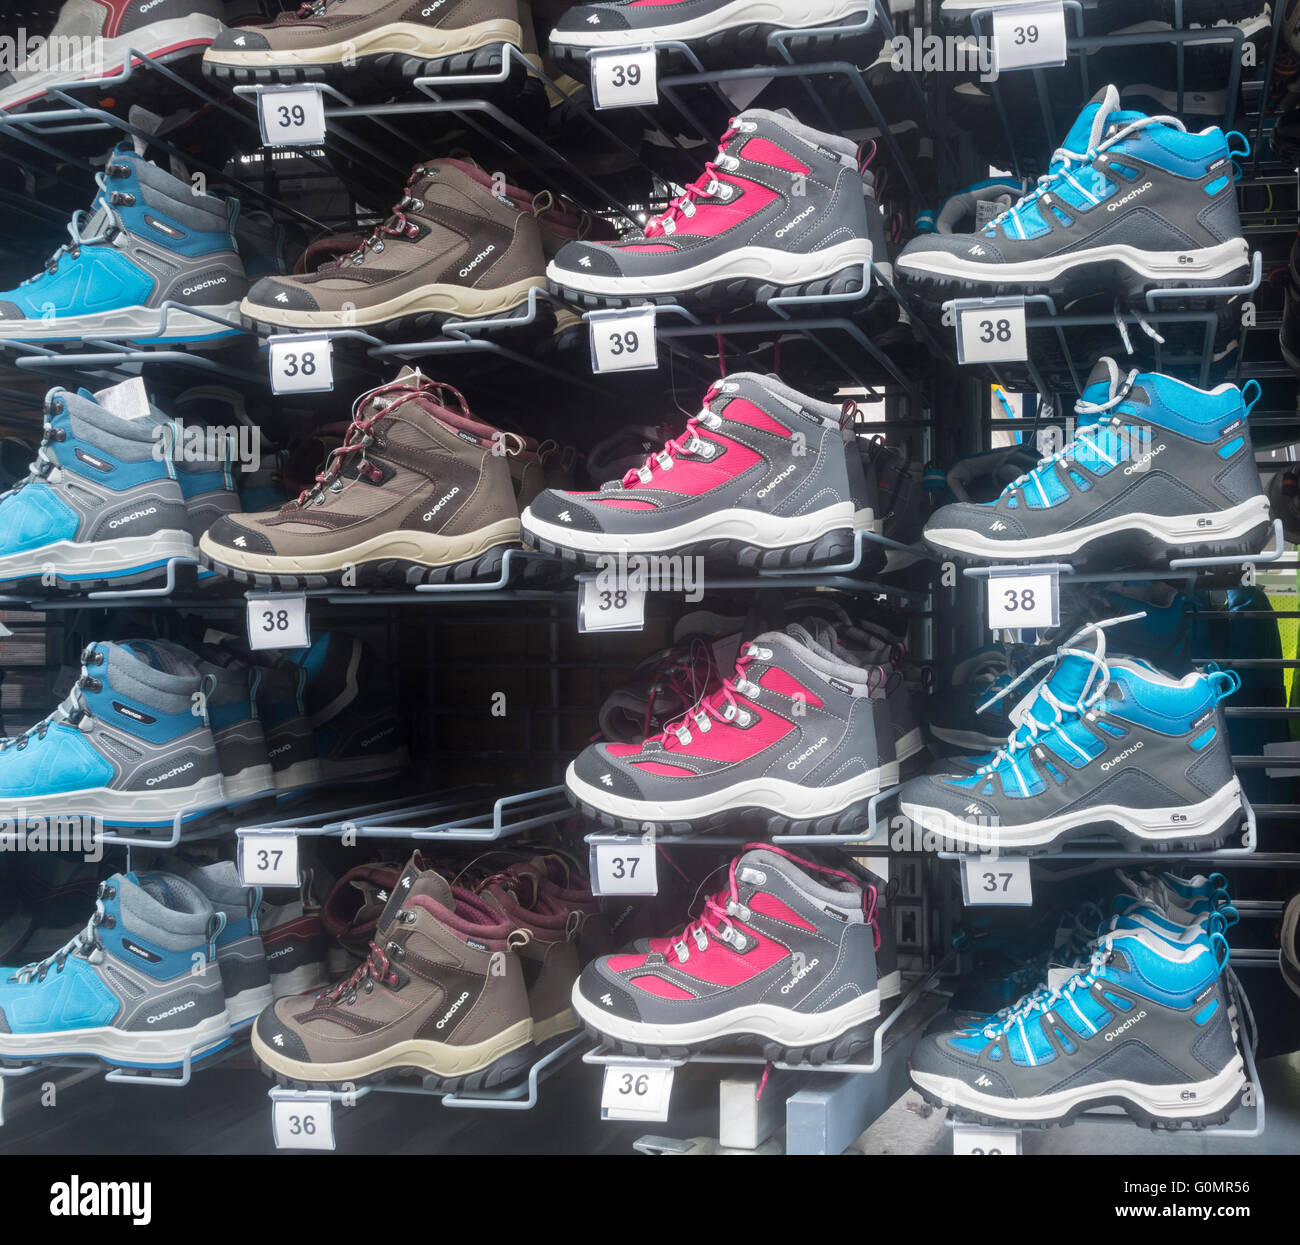 0f111576d3b Walking Boots Stock Photos & Walking Boots Stock Images - Alamy